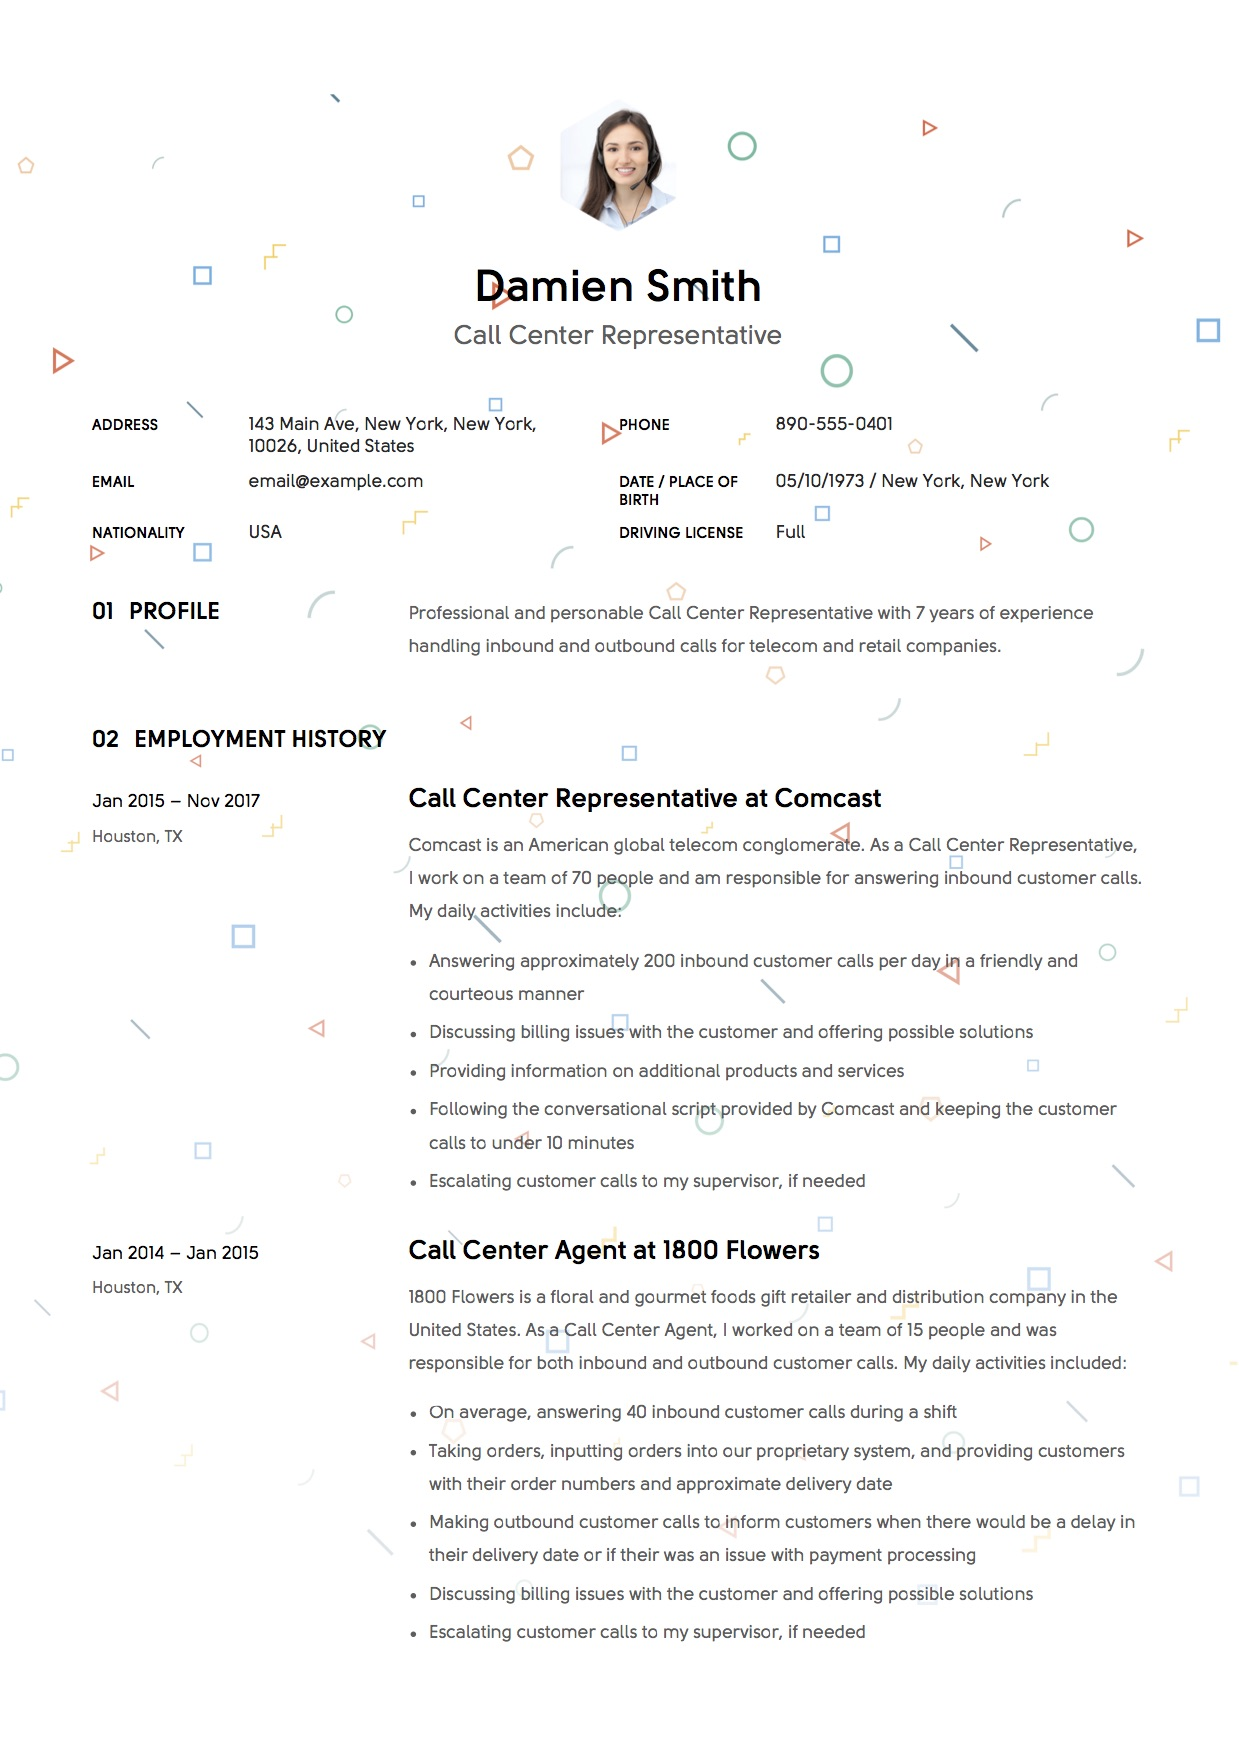 Resume Templates [2020] | PDF and Word | Free Downloads + ...